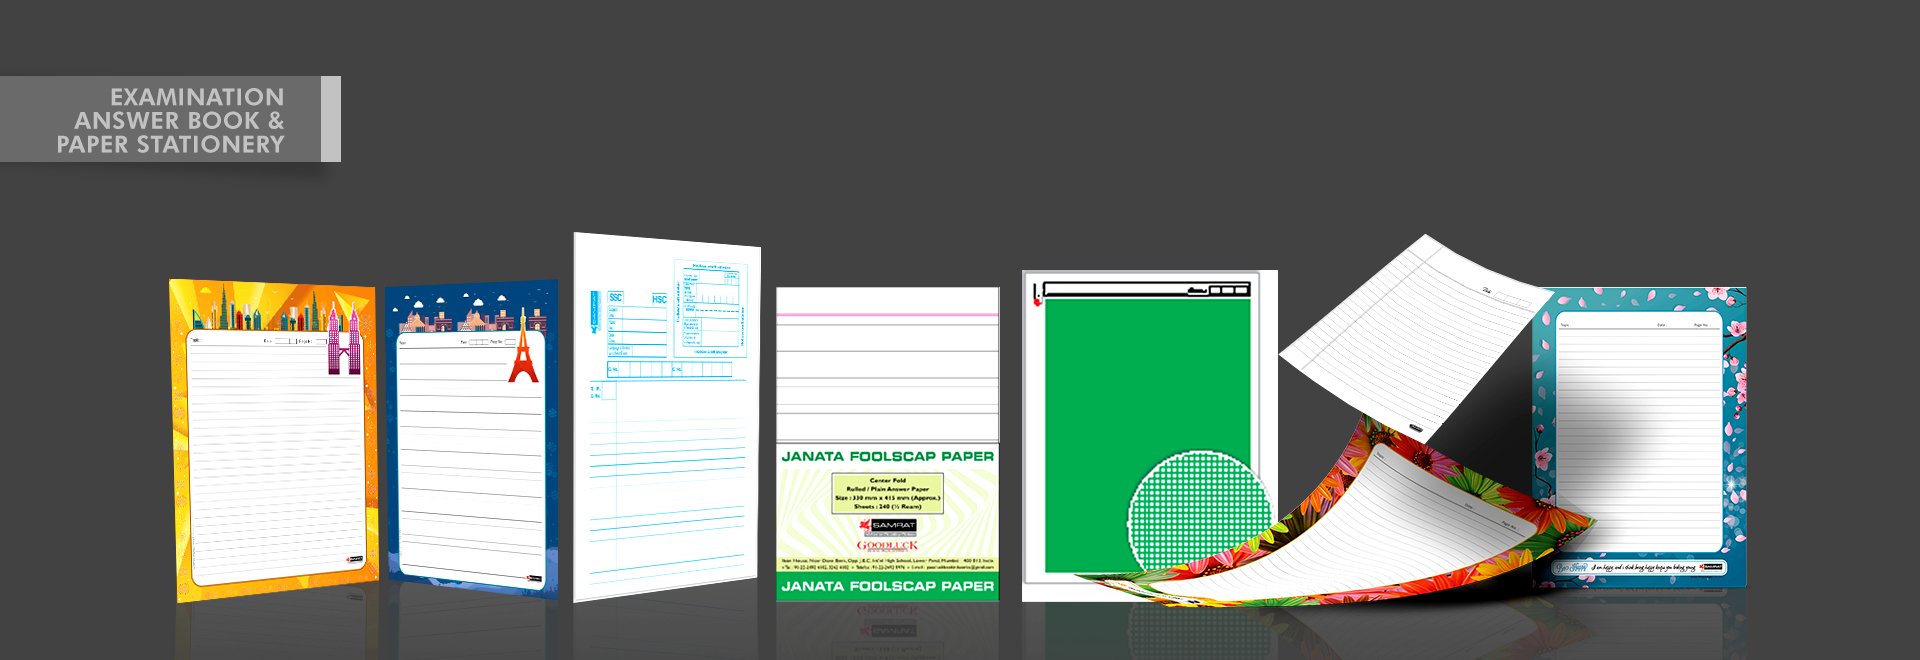 EXAMINATION ANSWER BOOK & PAPER STATIONERY